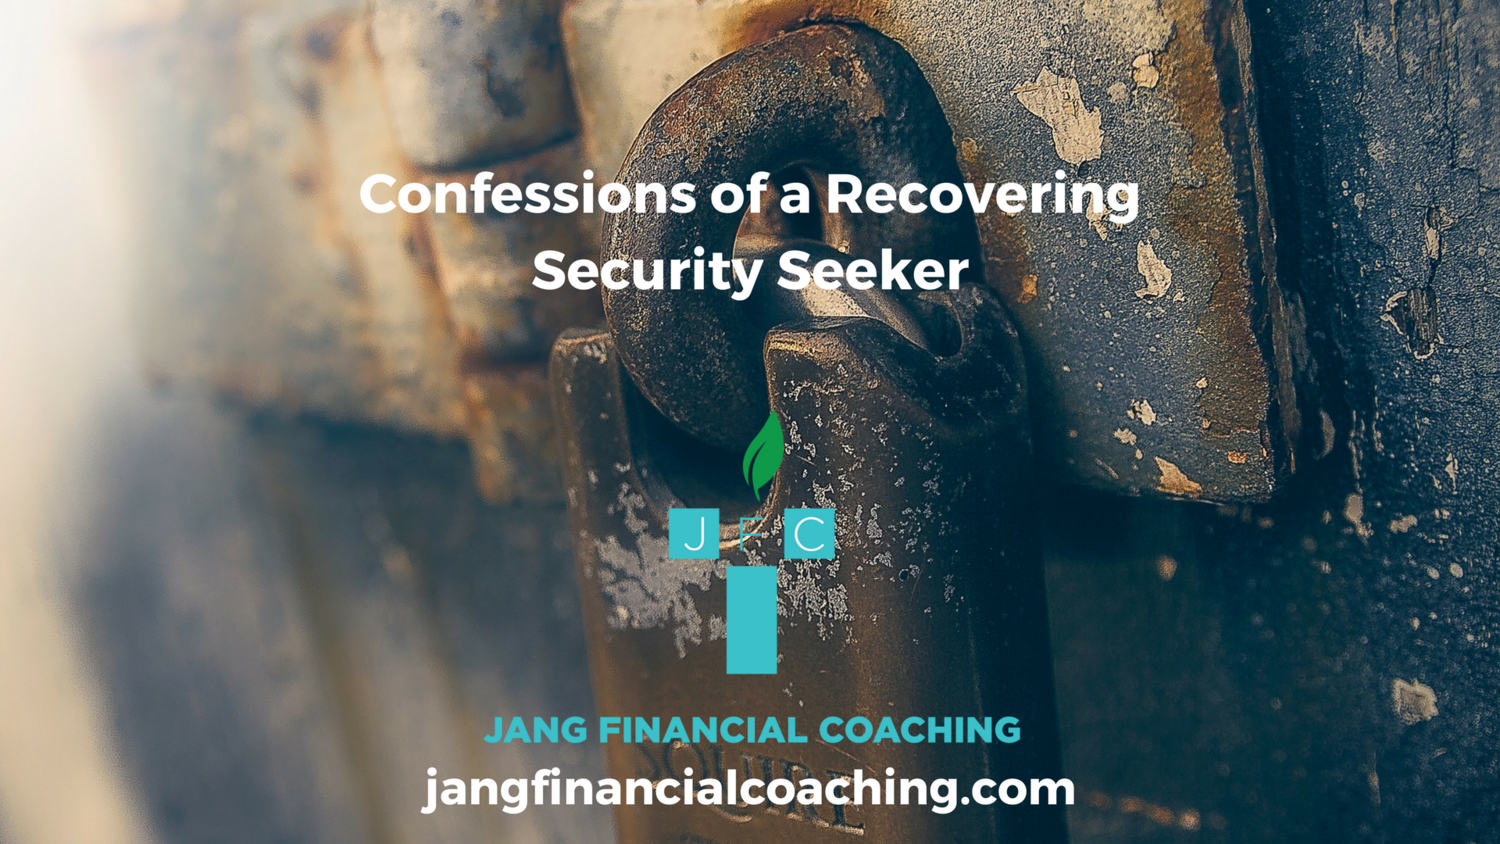 Confessions of a Recovering Security Seeker — Jang Financial Coaching